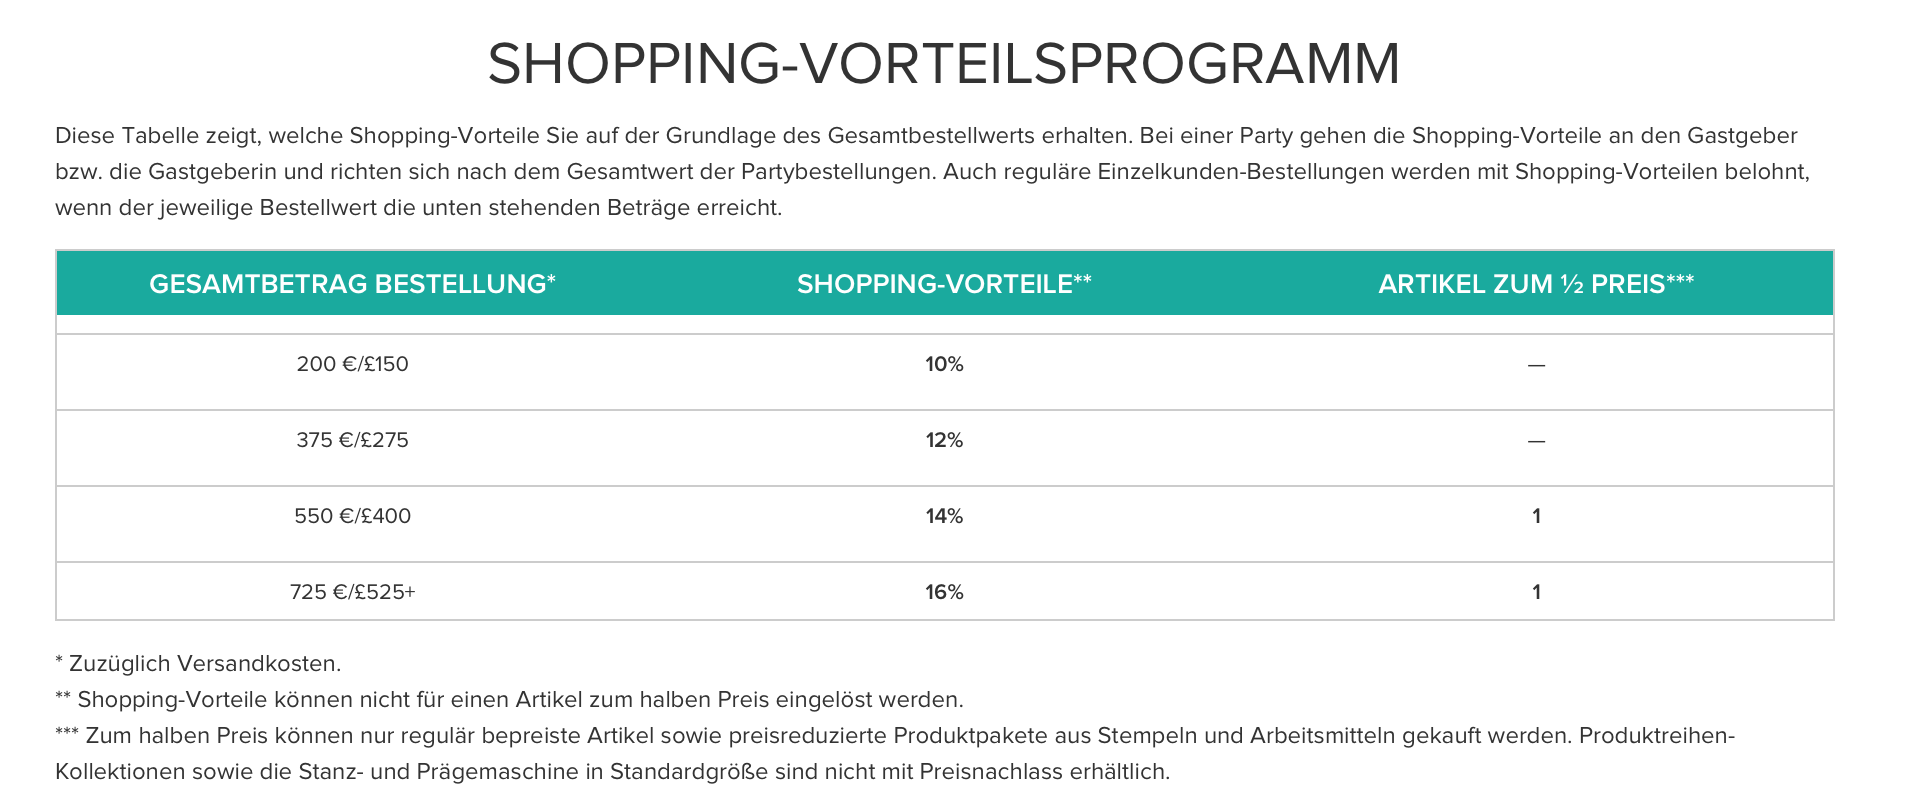 Shopping-Vorteilsprogramm